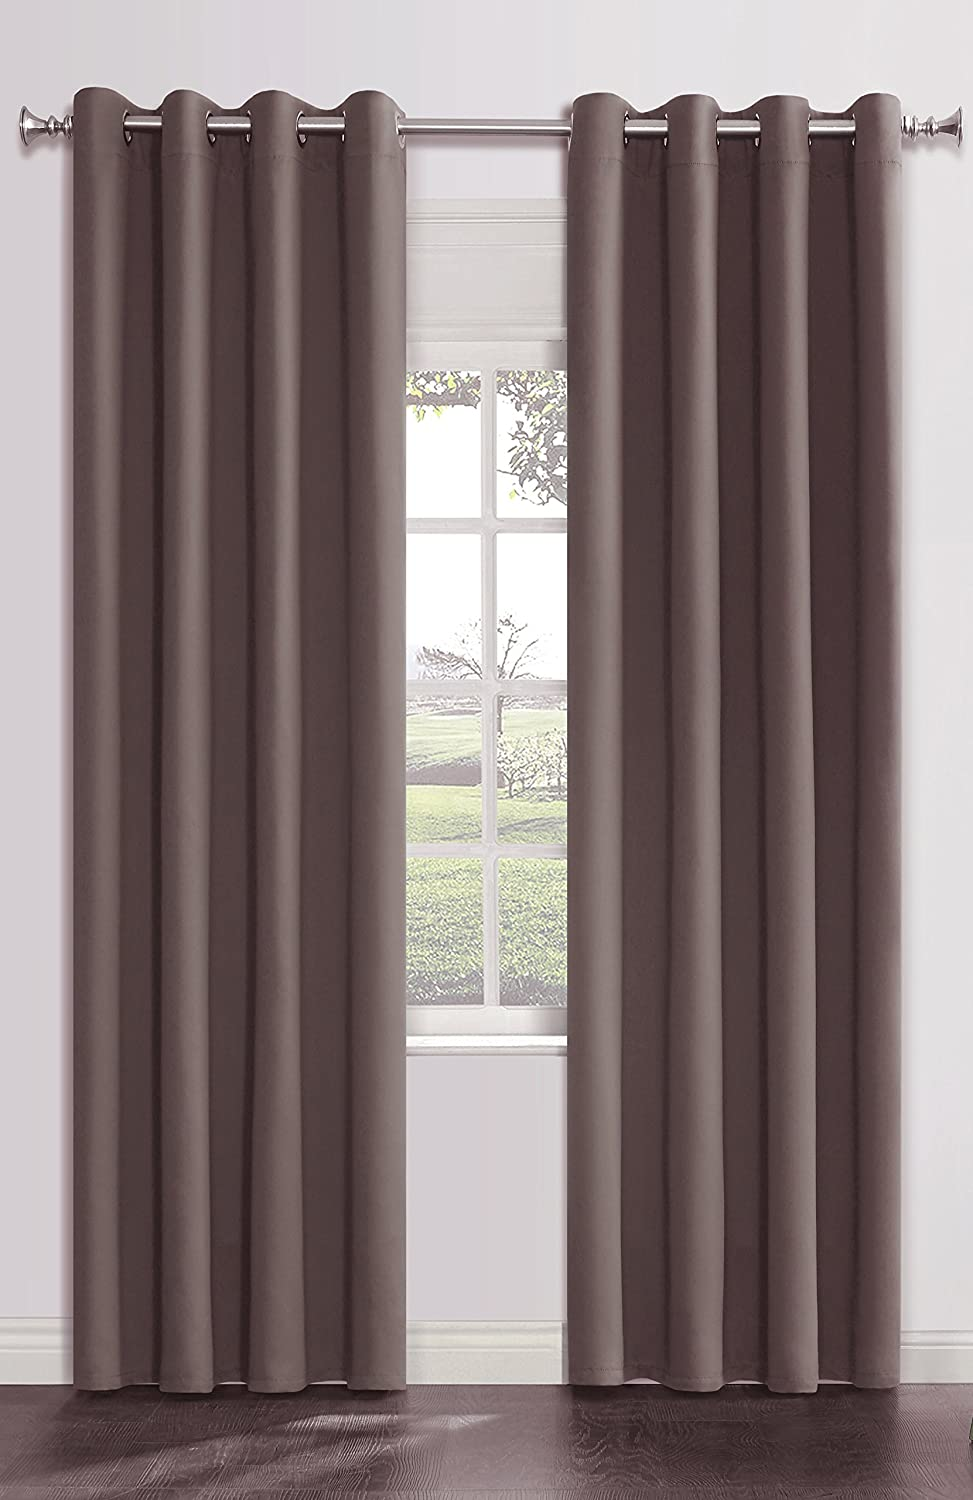 Onlyyou Window Grommet Thermal Blackout Curtains Drapes, Room Curtain Panels, 1 Pair, 52 x 84 Inch, Dark Brown Grey